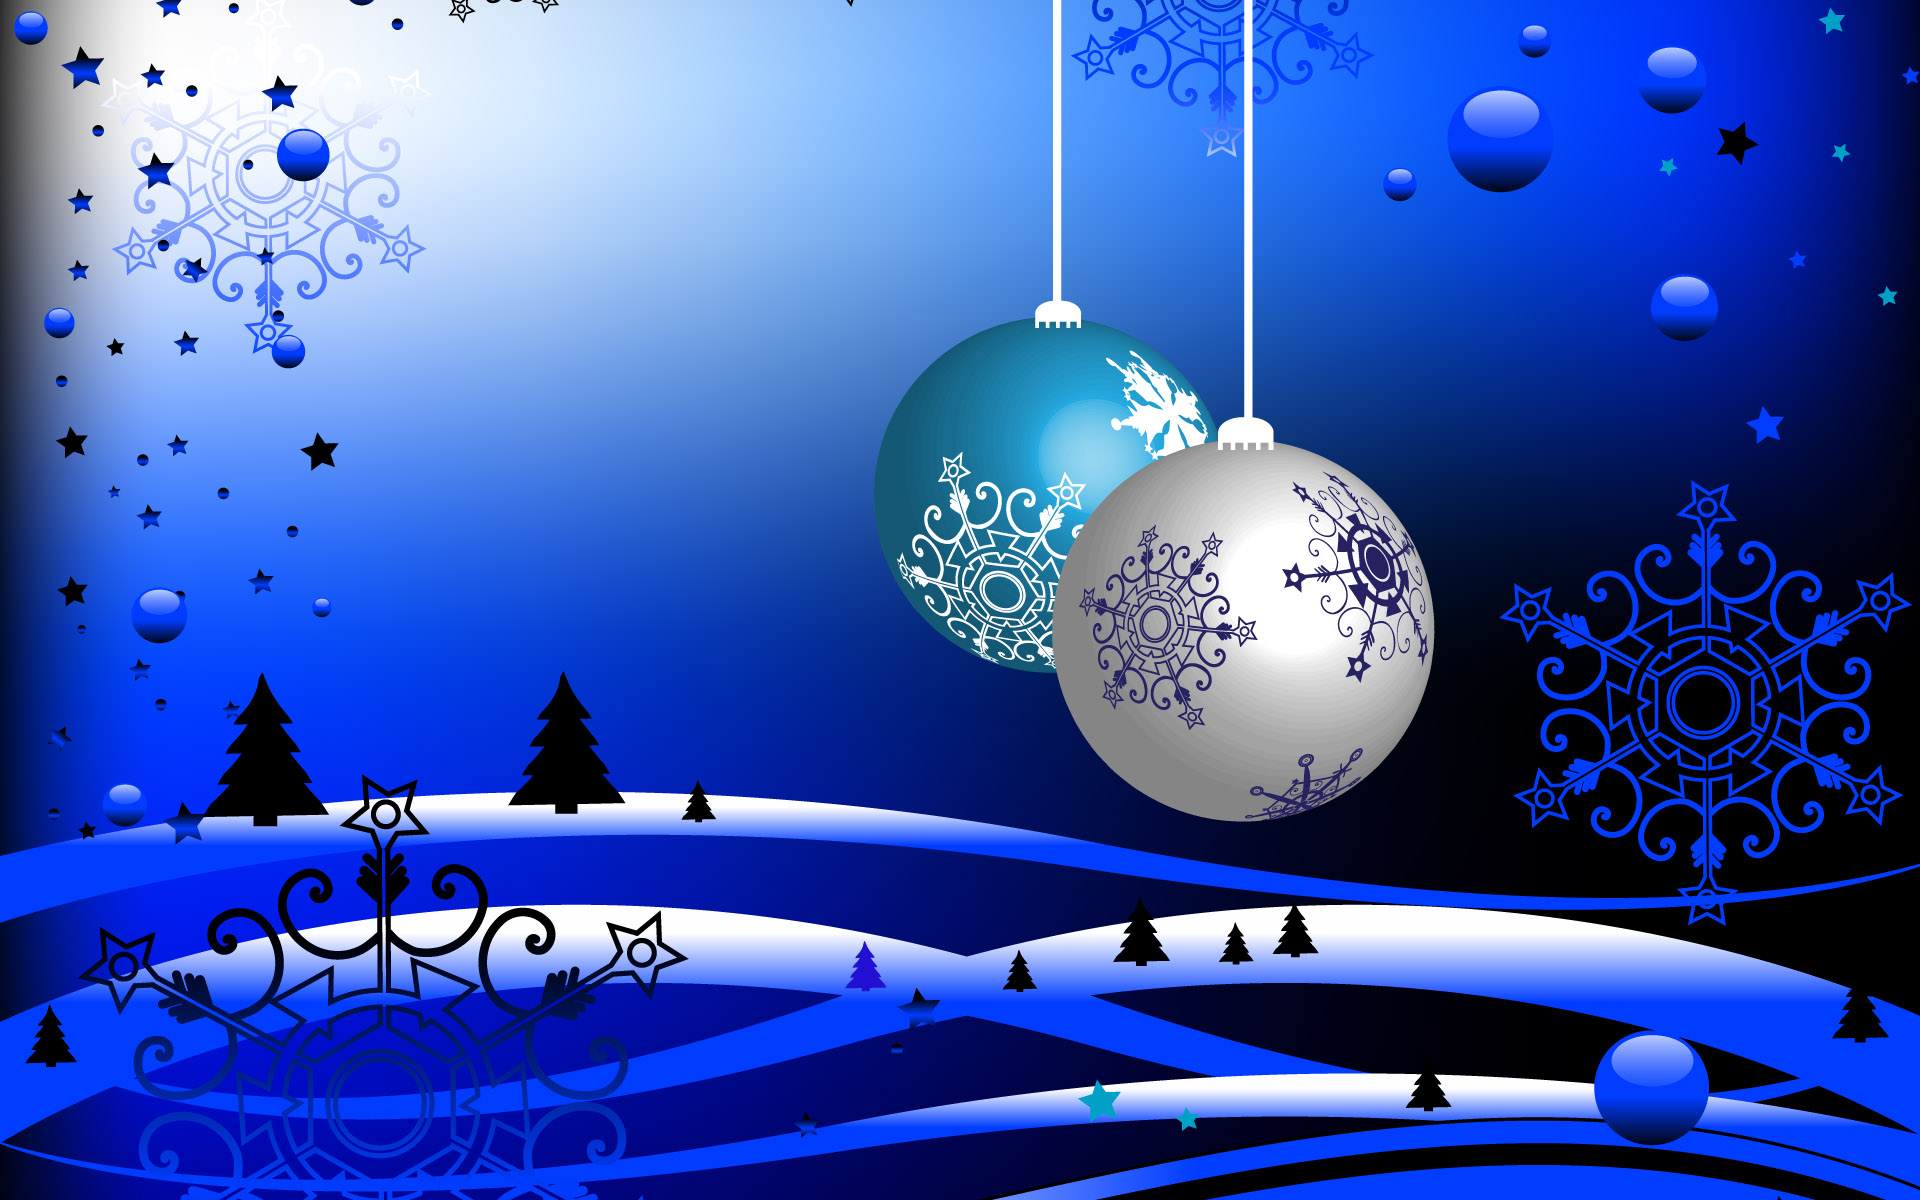 Bright & Shining Christmas HD Wallpaper for desktop